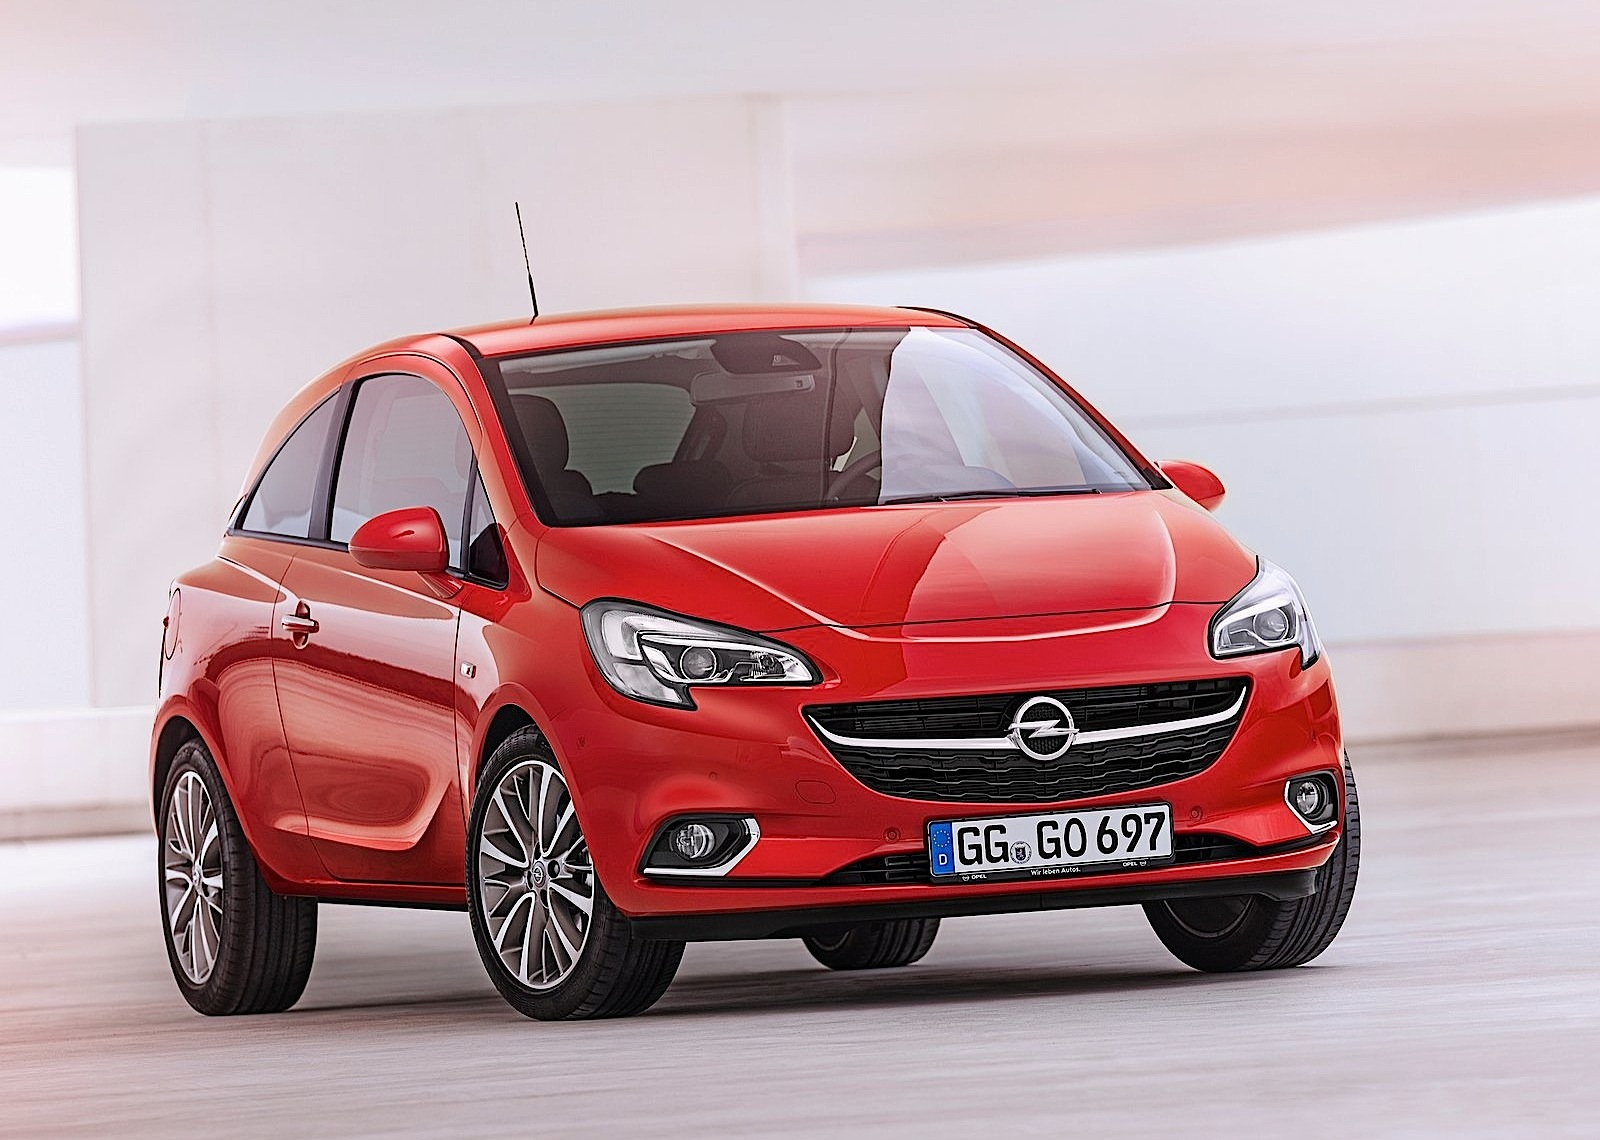 opel corsa 3 doors 2014 2015 2016 2017 autoevolution. Black Bedroom Furniture Sets. Home Design Ideas